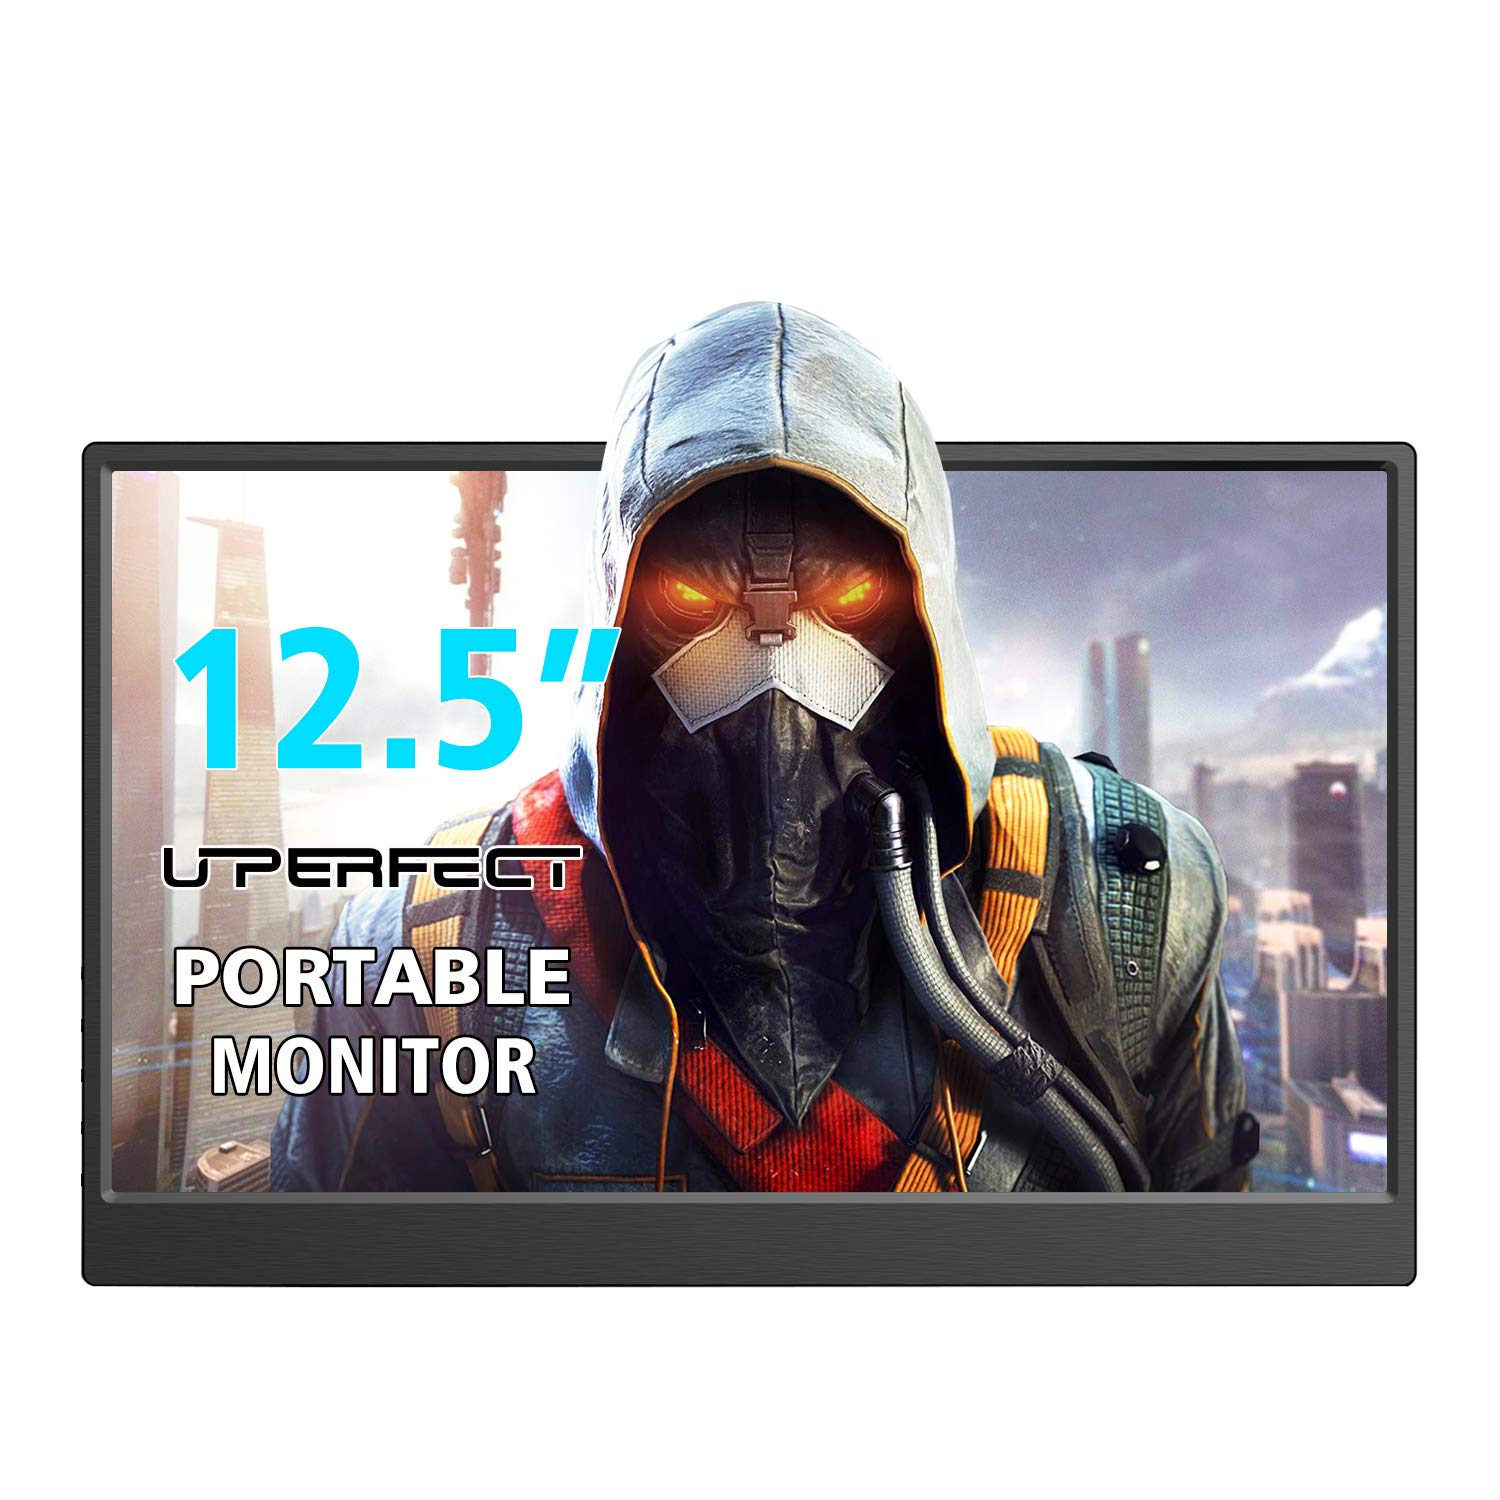 UPERFECT Computer Monitor 12.5 Inch Monitor 1000 1 Screen 1920×1080 Second Display 16 9 External Display Built-in Speaker Gaming Monitor Fit for HDMI USB DC Raspberry Pi Switch PS3 PS4 Xbox 360 PC